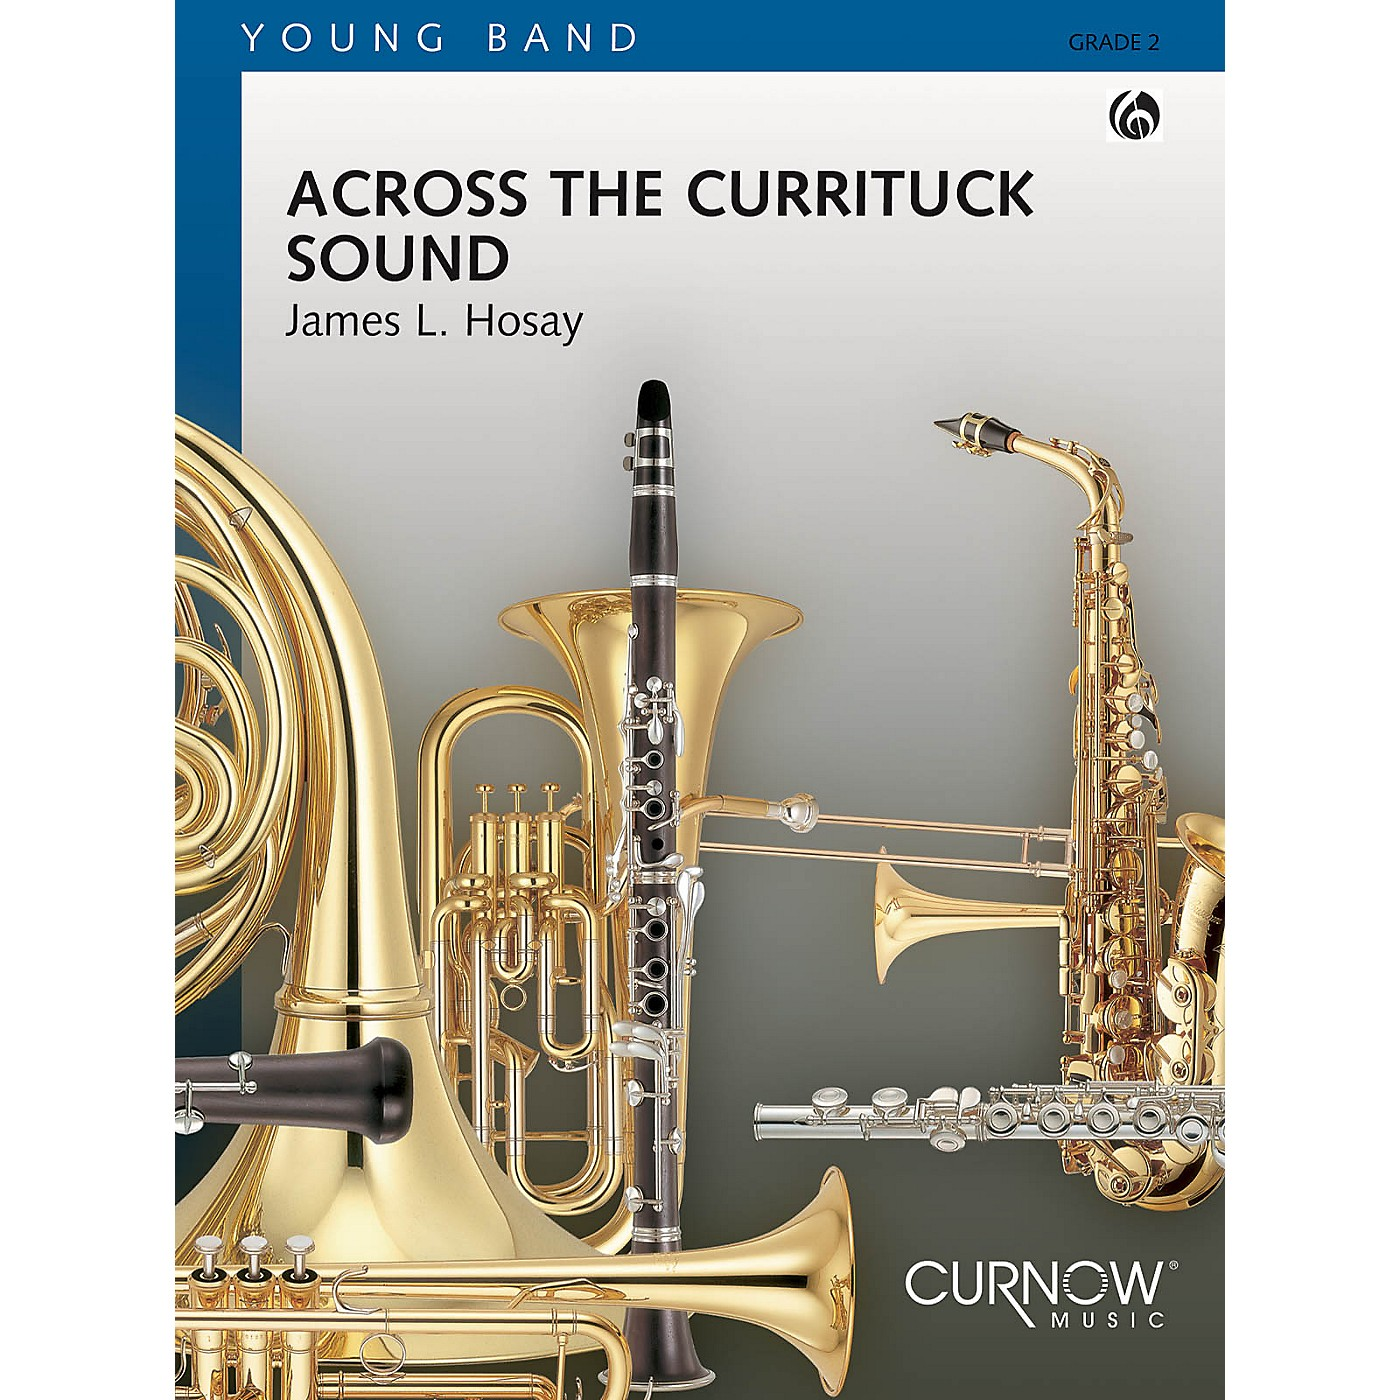 Curnow Music Across the Currituck Sound (Grade 2 - Score Only) Concert Band Level 2 Composed by James L. Hosay thumbnail